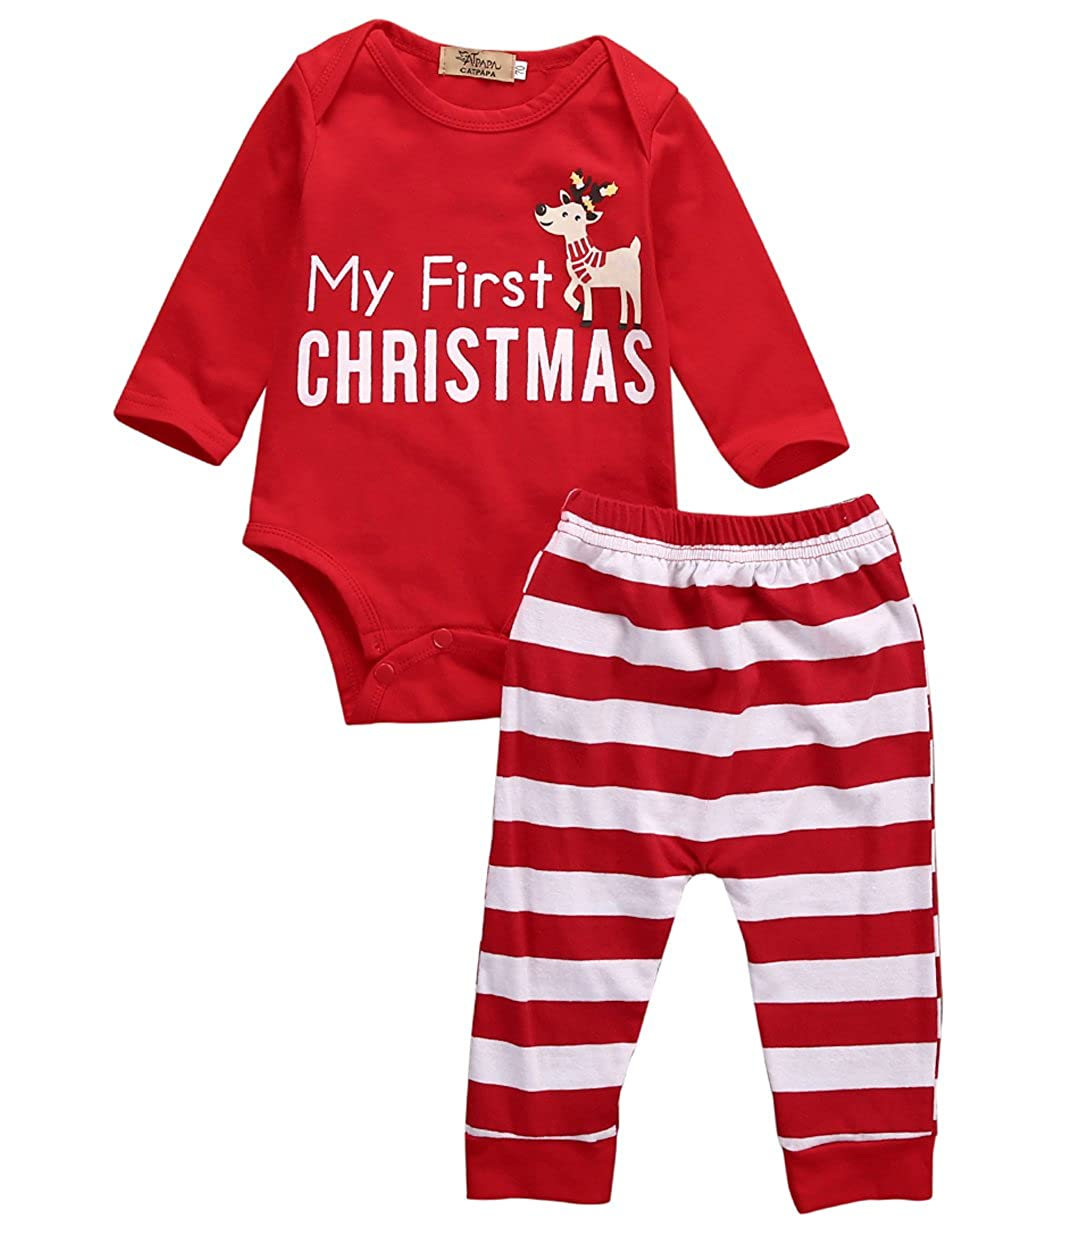 8b8ebc7b4 Top 10 wholesale My 1st Christmas - Chinabrands.com